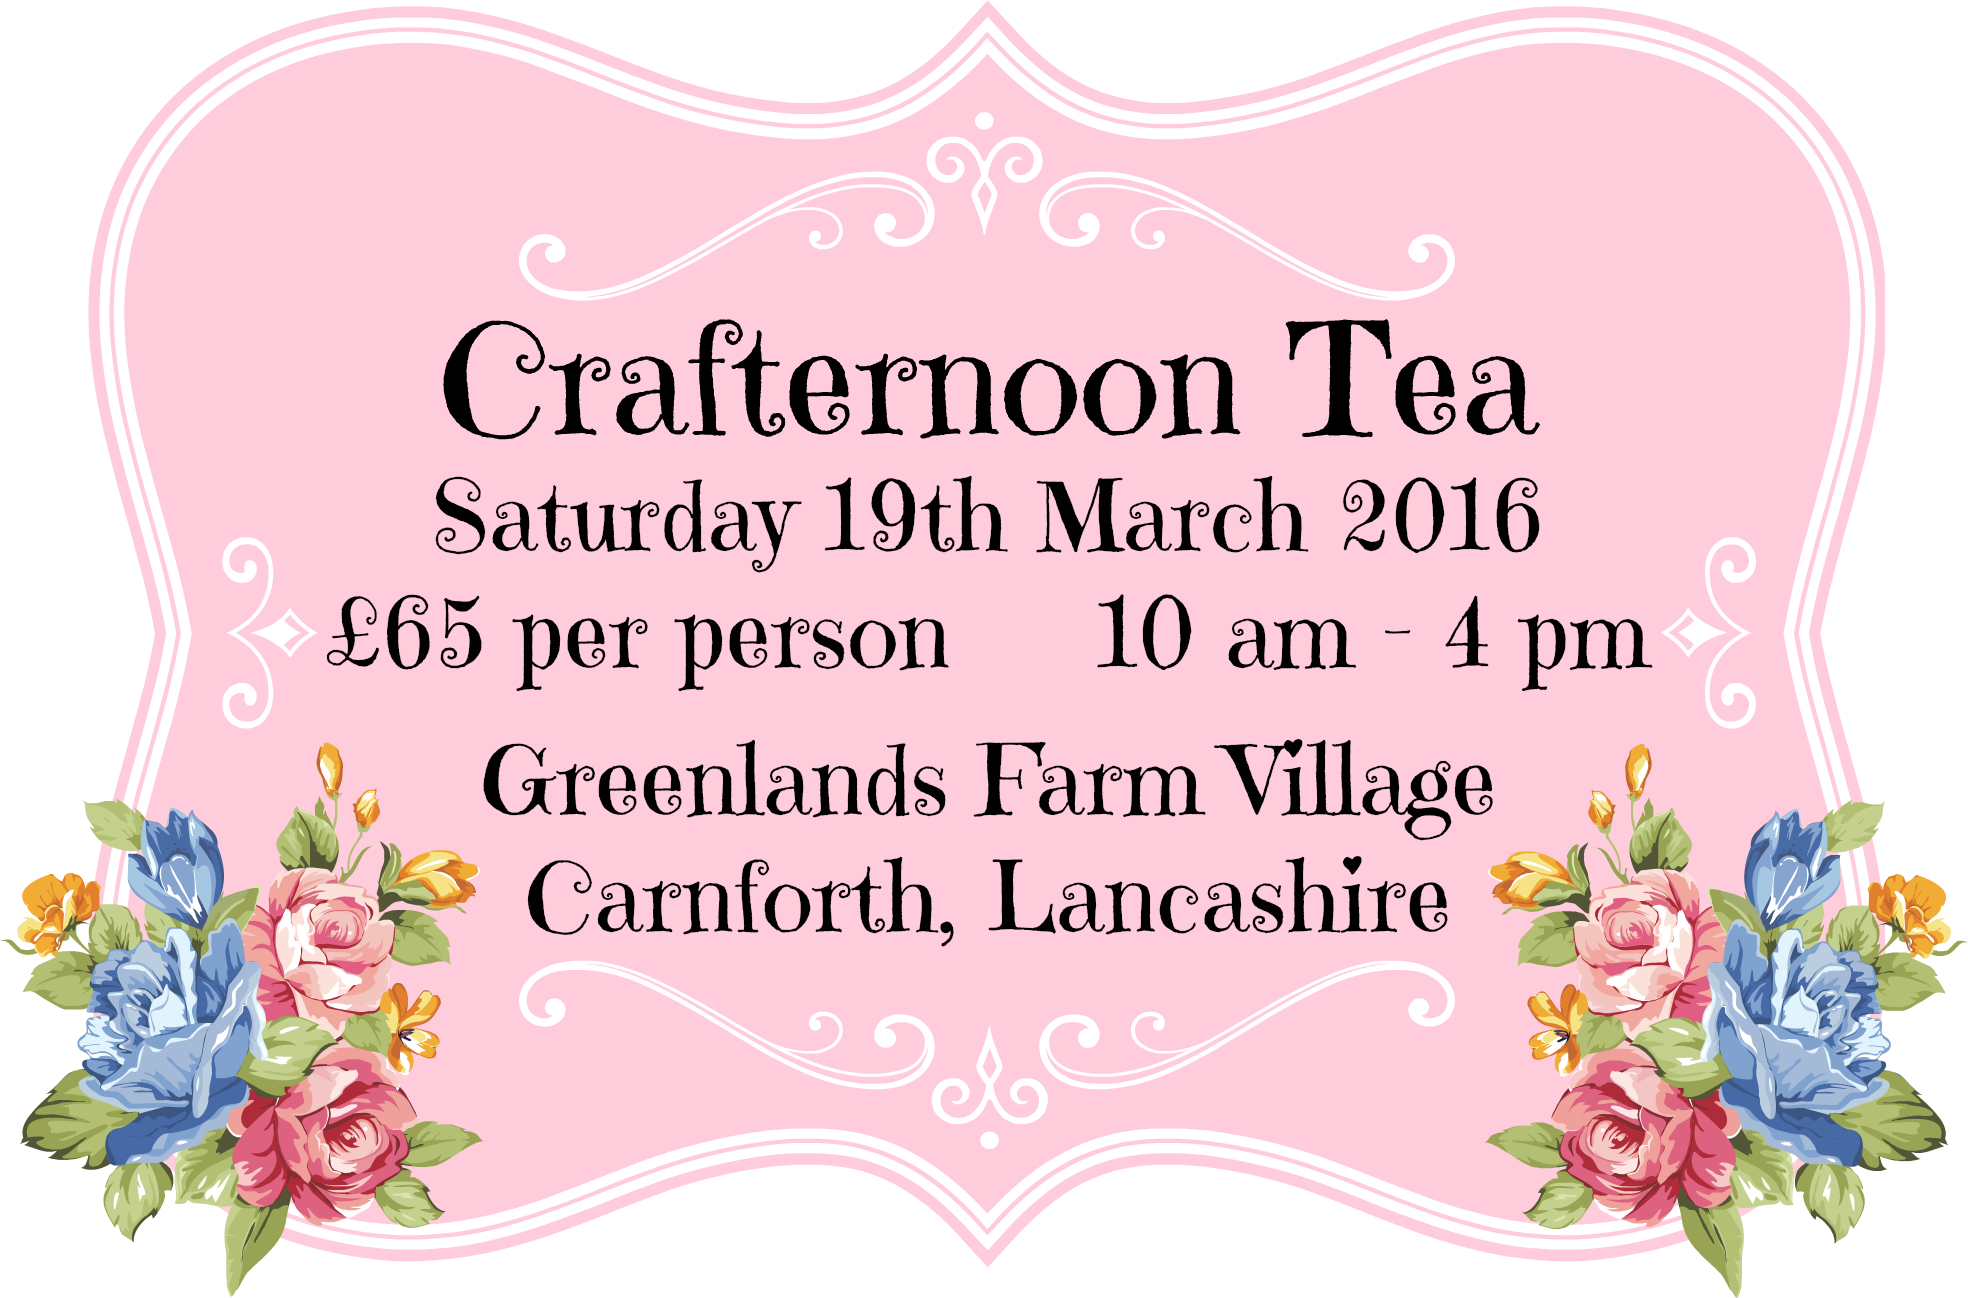 Crafternoon Tea 19th March